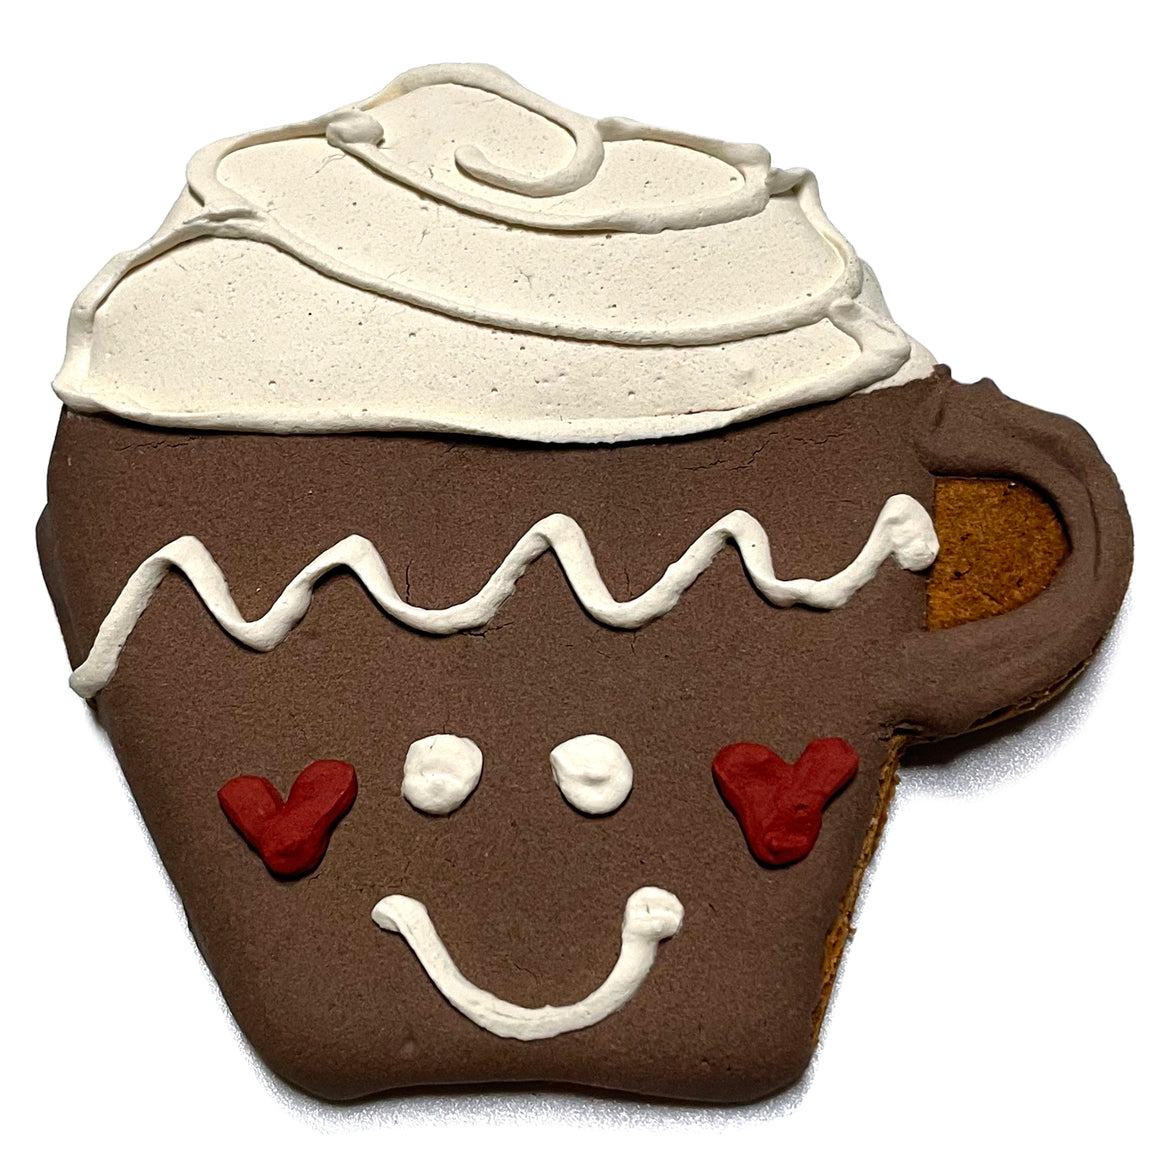 Hot Chocolate Mug (case of 12)